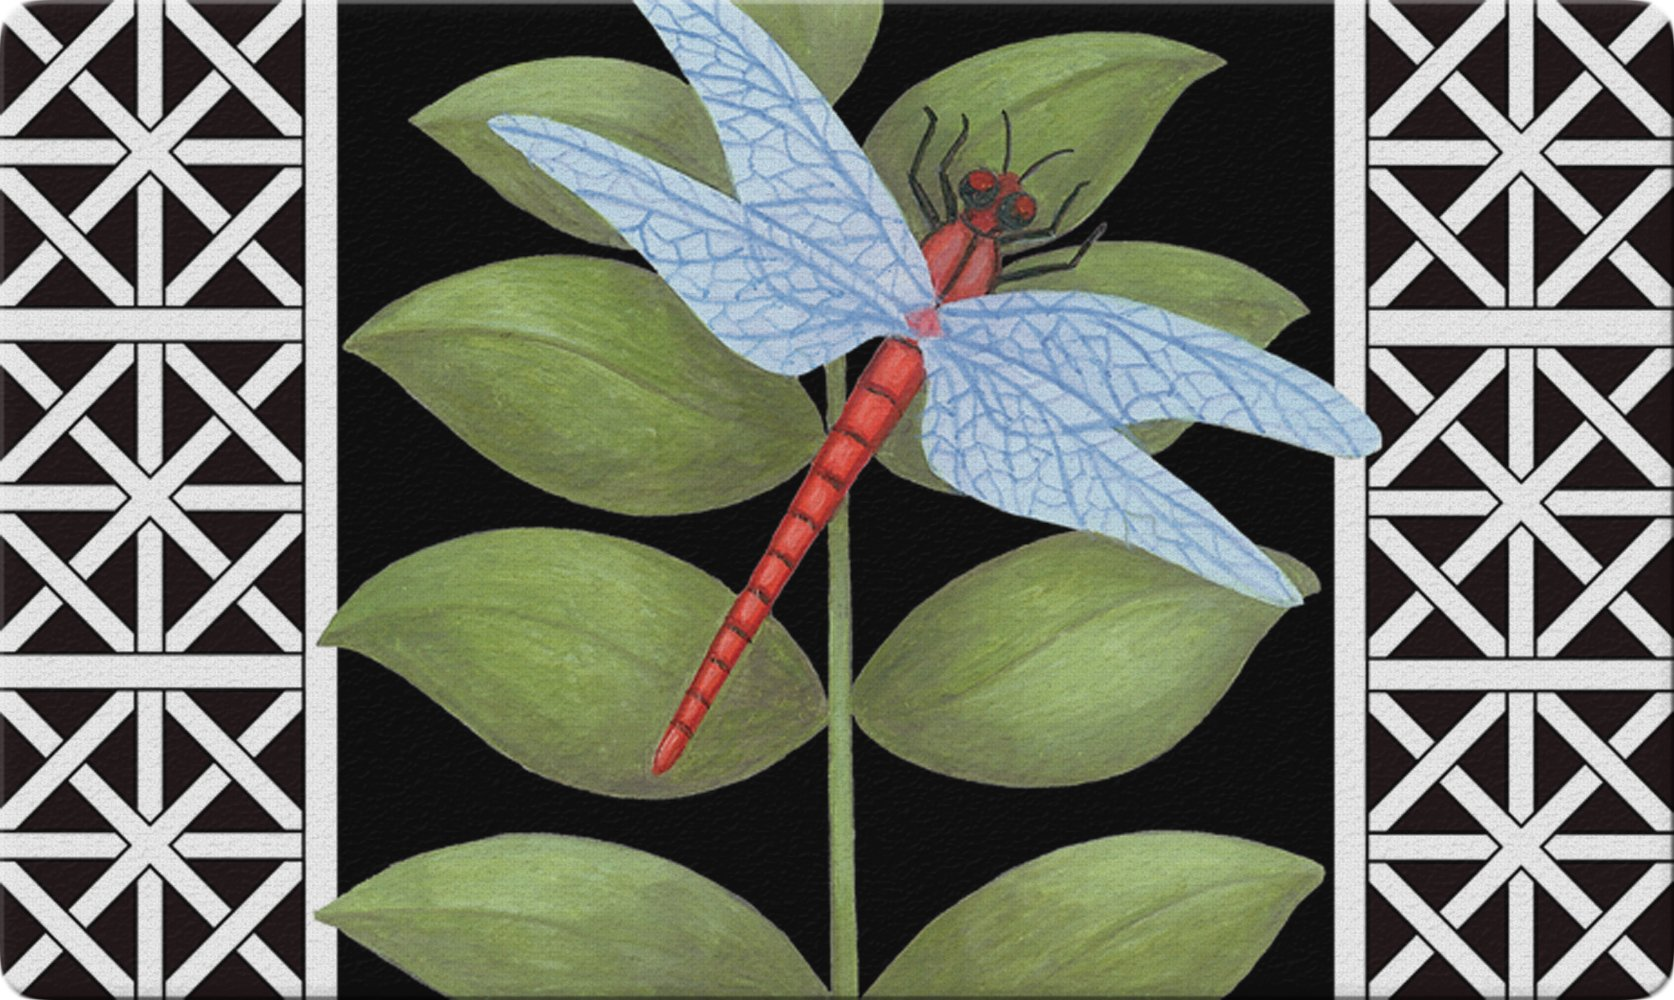 Toland Home Garden Dragonfly on Black 18 x 30 Inch Decorative Floor Mat Leaf Animal Lattice Doormat